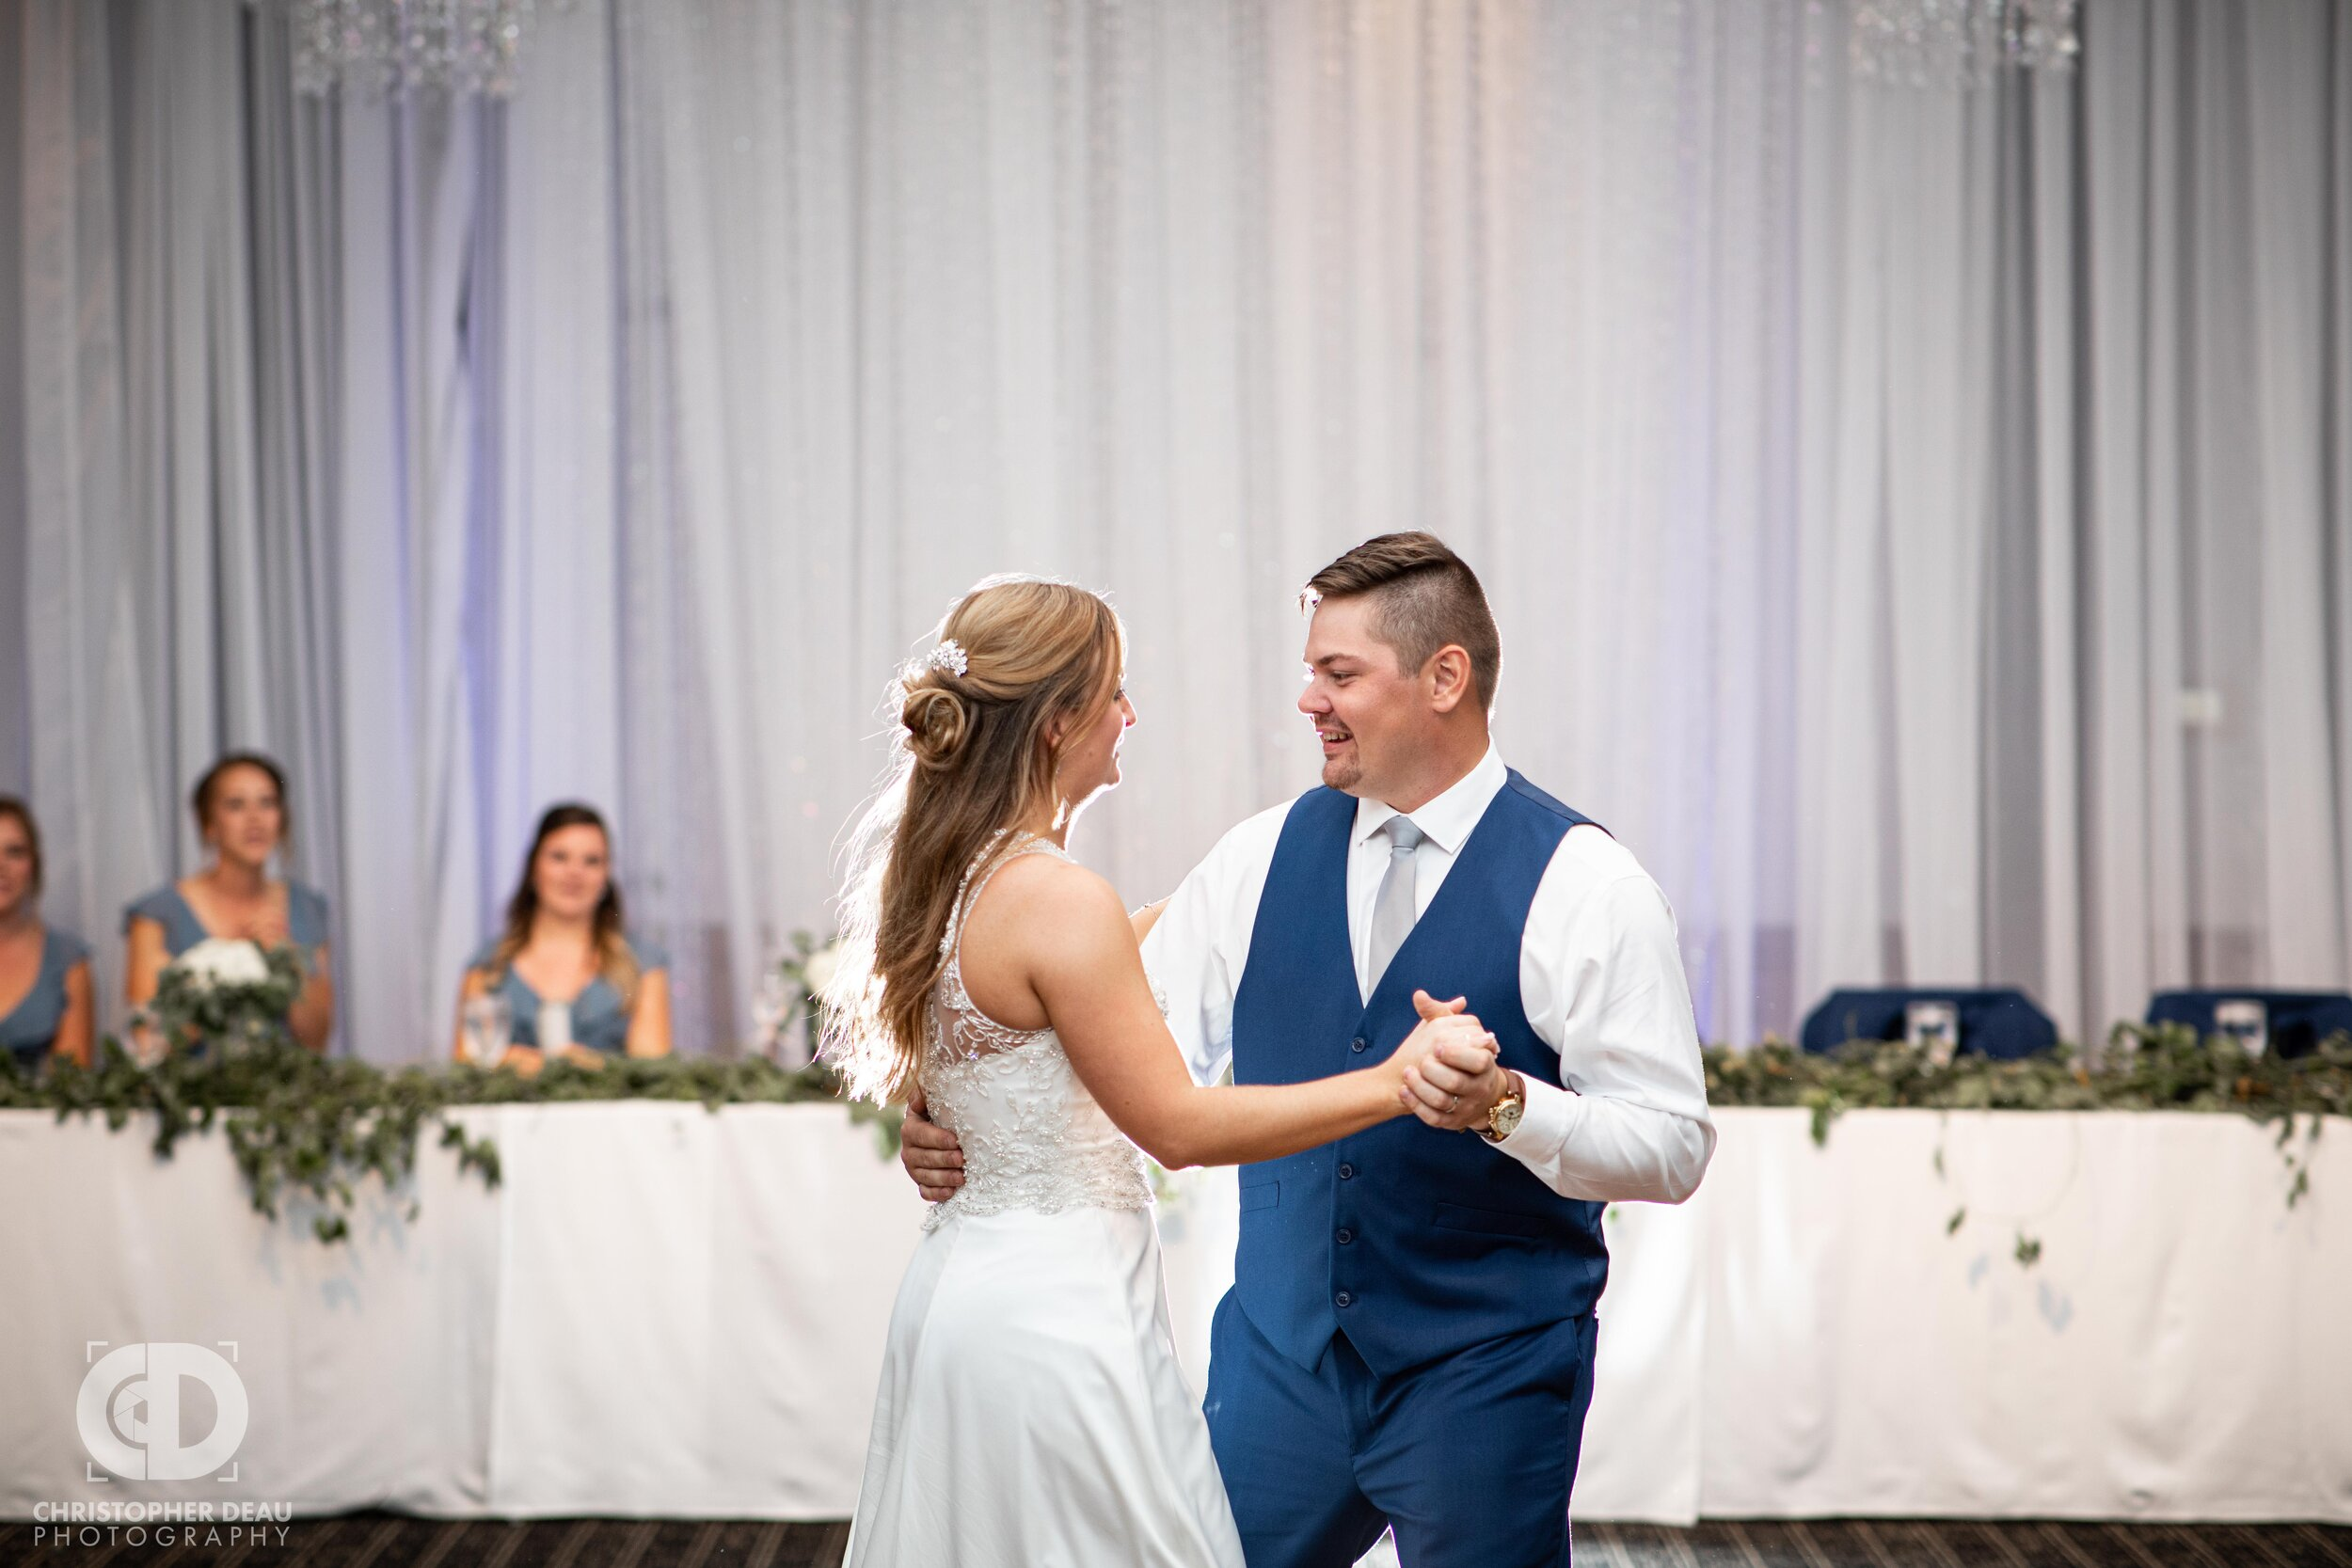 First dance at CityScape in Kalamazoo